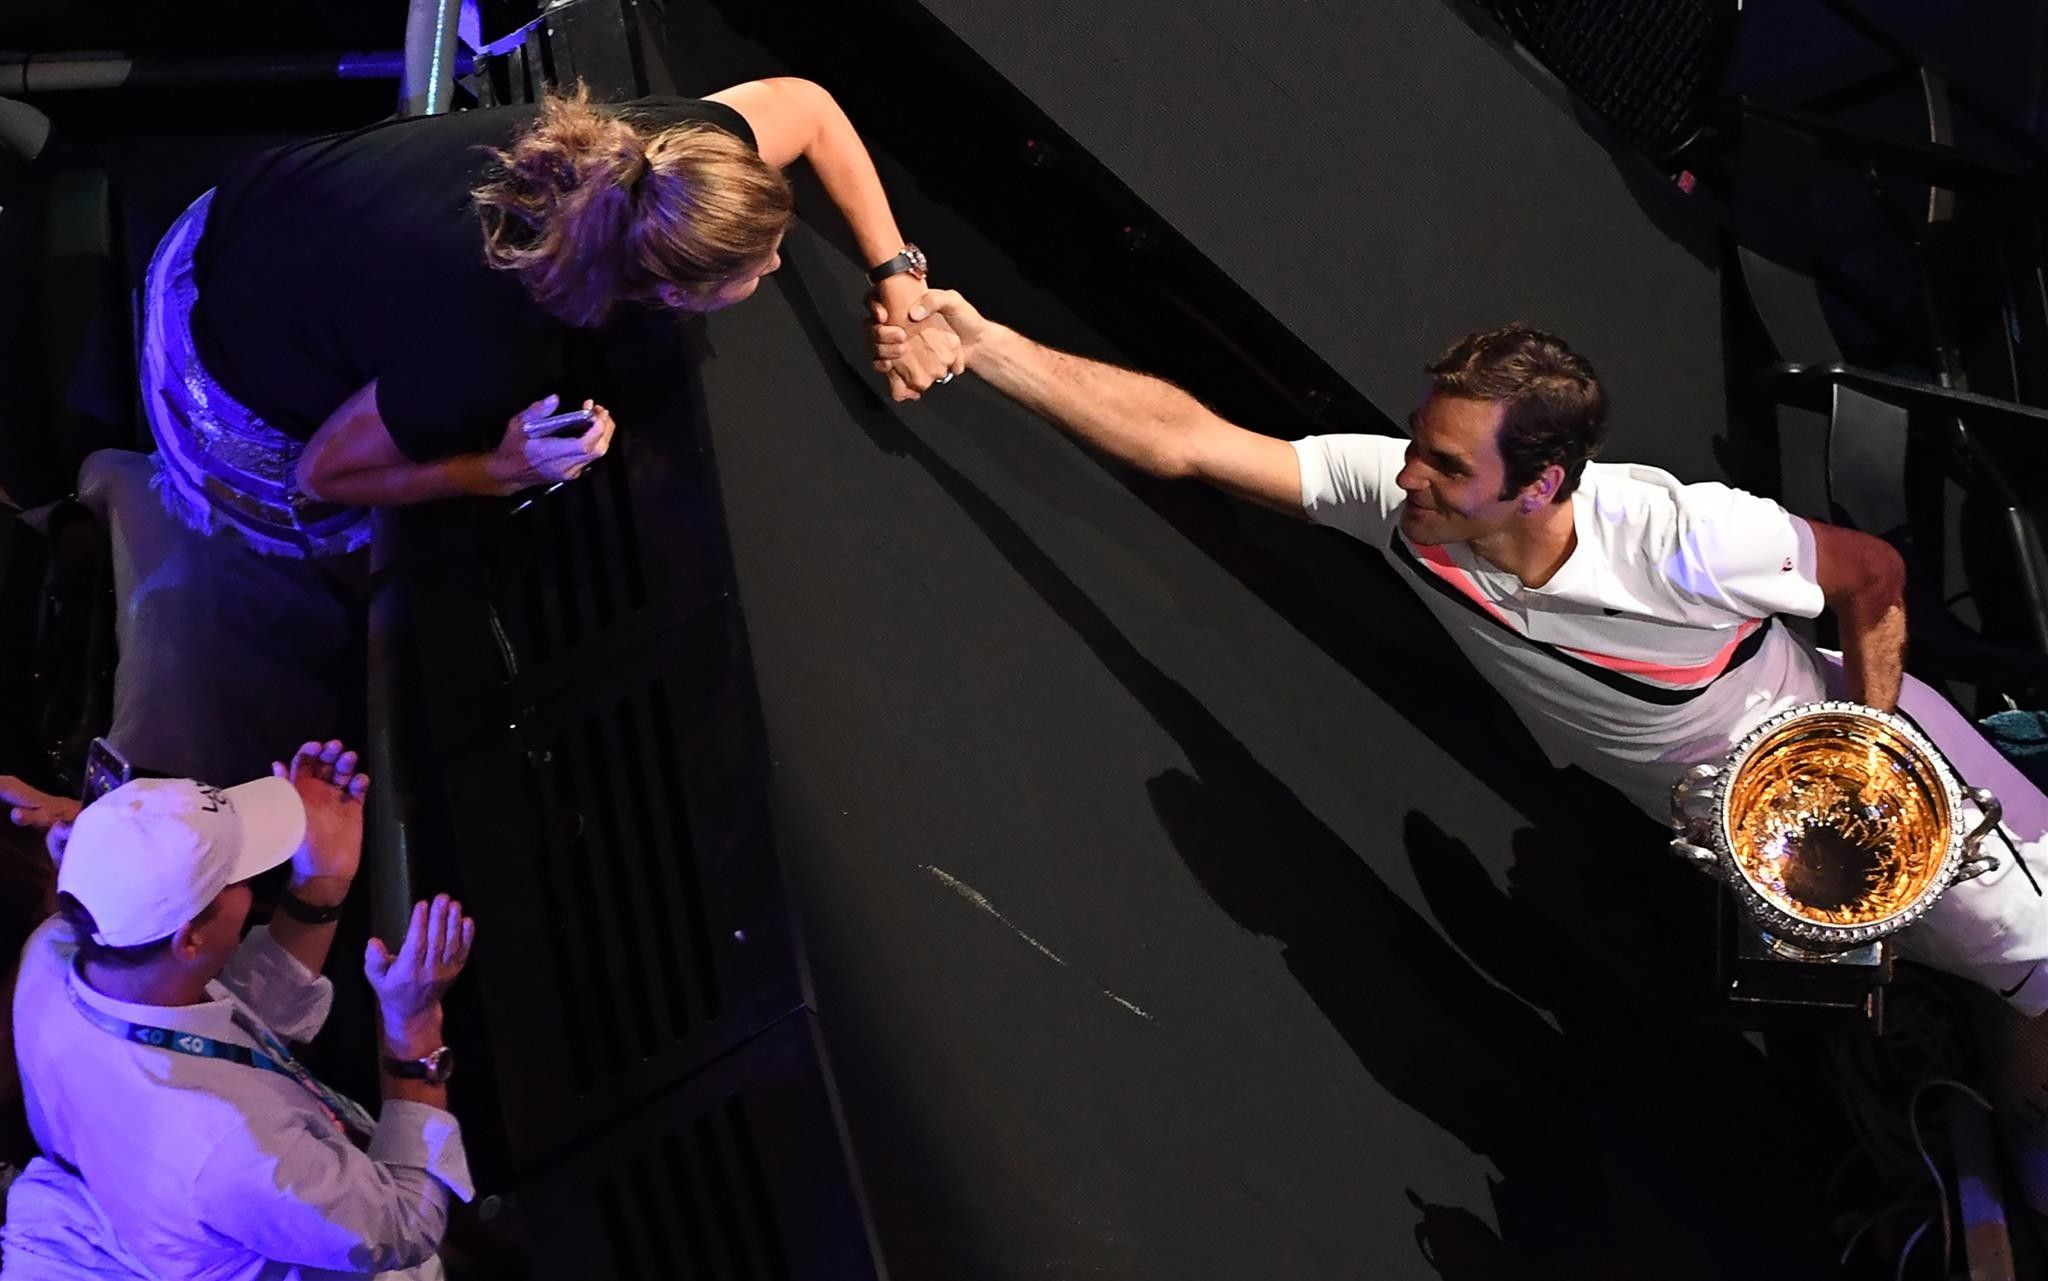 """Roger on Mirka: """"Without her support, I wouldn't be playing tennis no more since many years. I'm happy that she's super supportive, and she's willing to take on a massive workload with the kiddies... This life wouldn't work if she said no."""" #RelationshipGoals #AusOpen Roger Federer"""